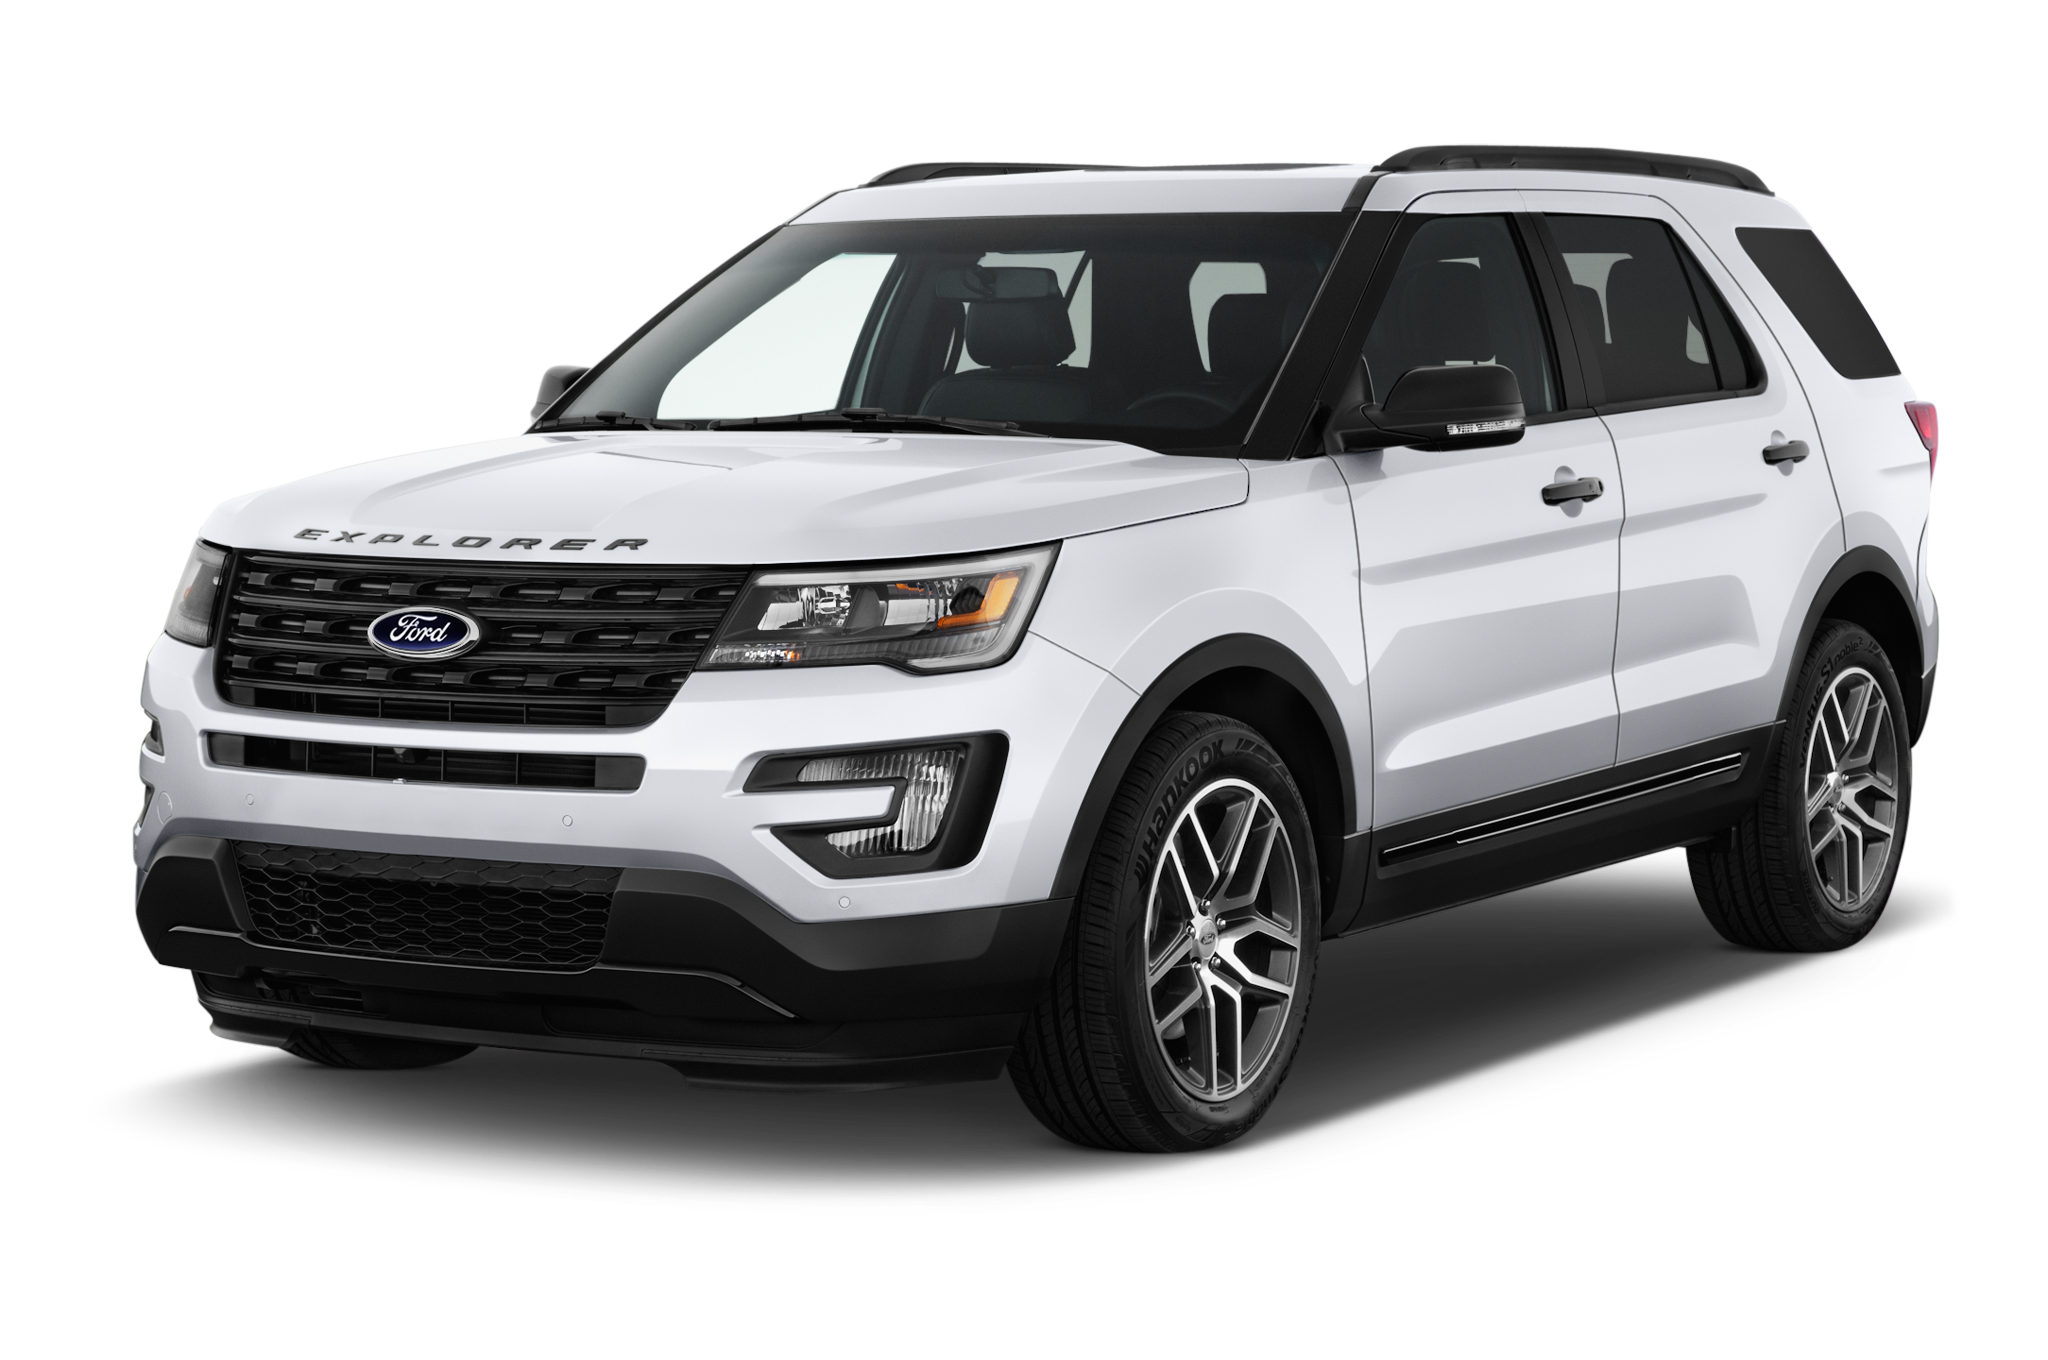 2017 ford explorer sport 4wd reviews msn autos. Black Bedroom Furniture Sets. Home Design Ideas